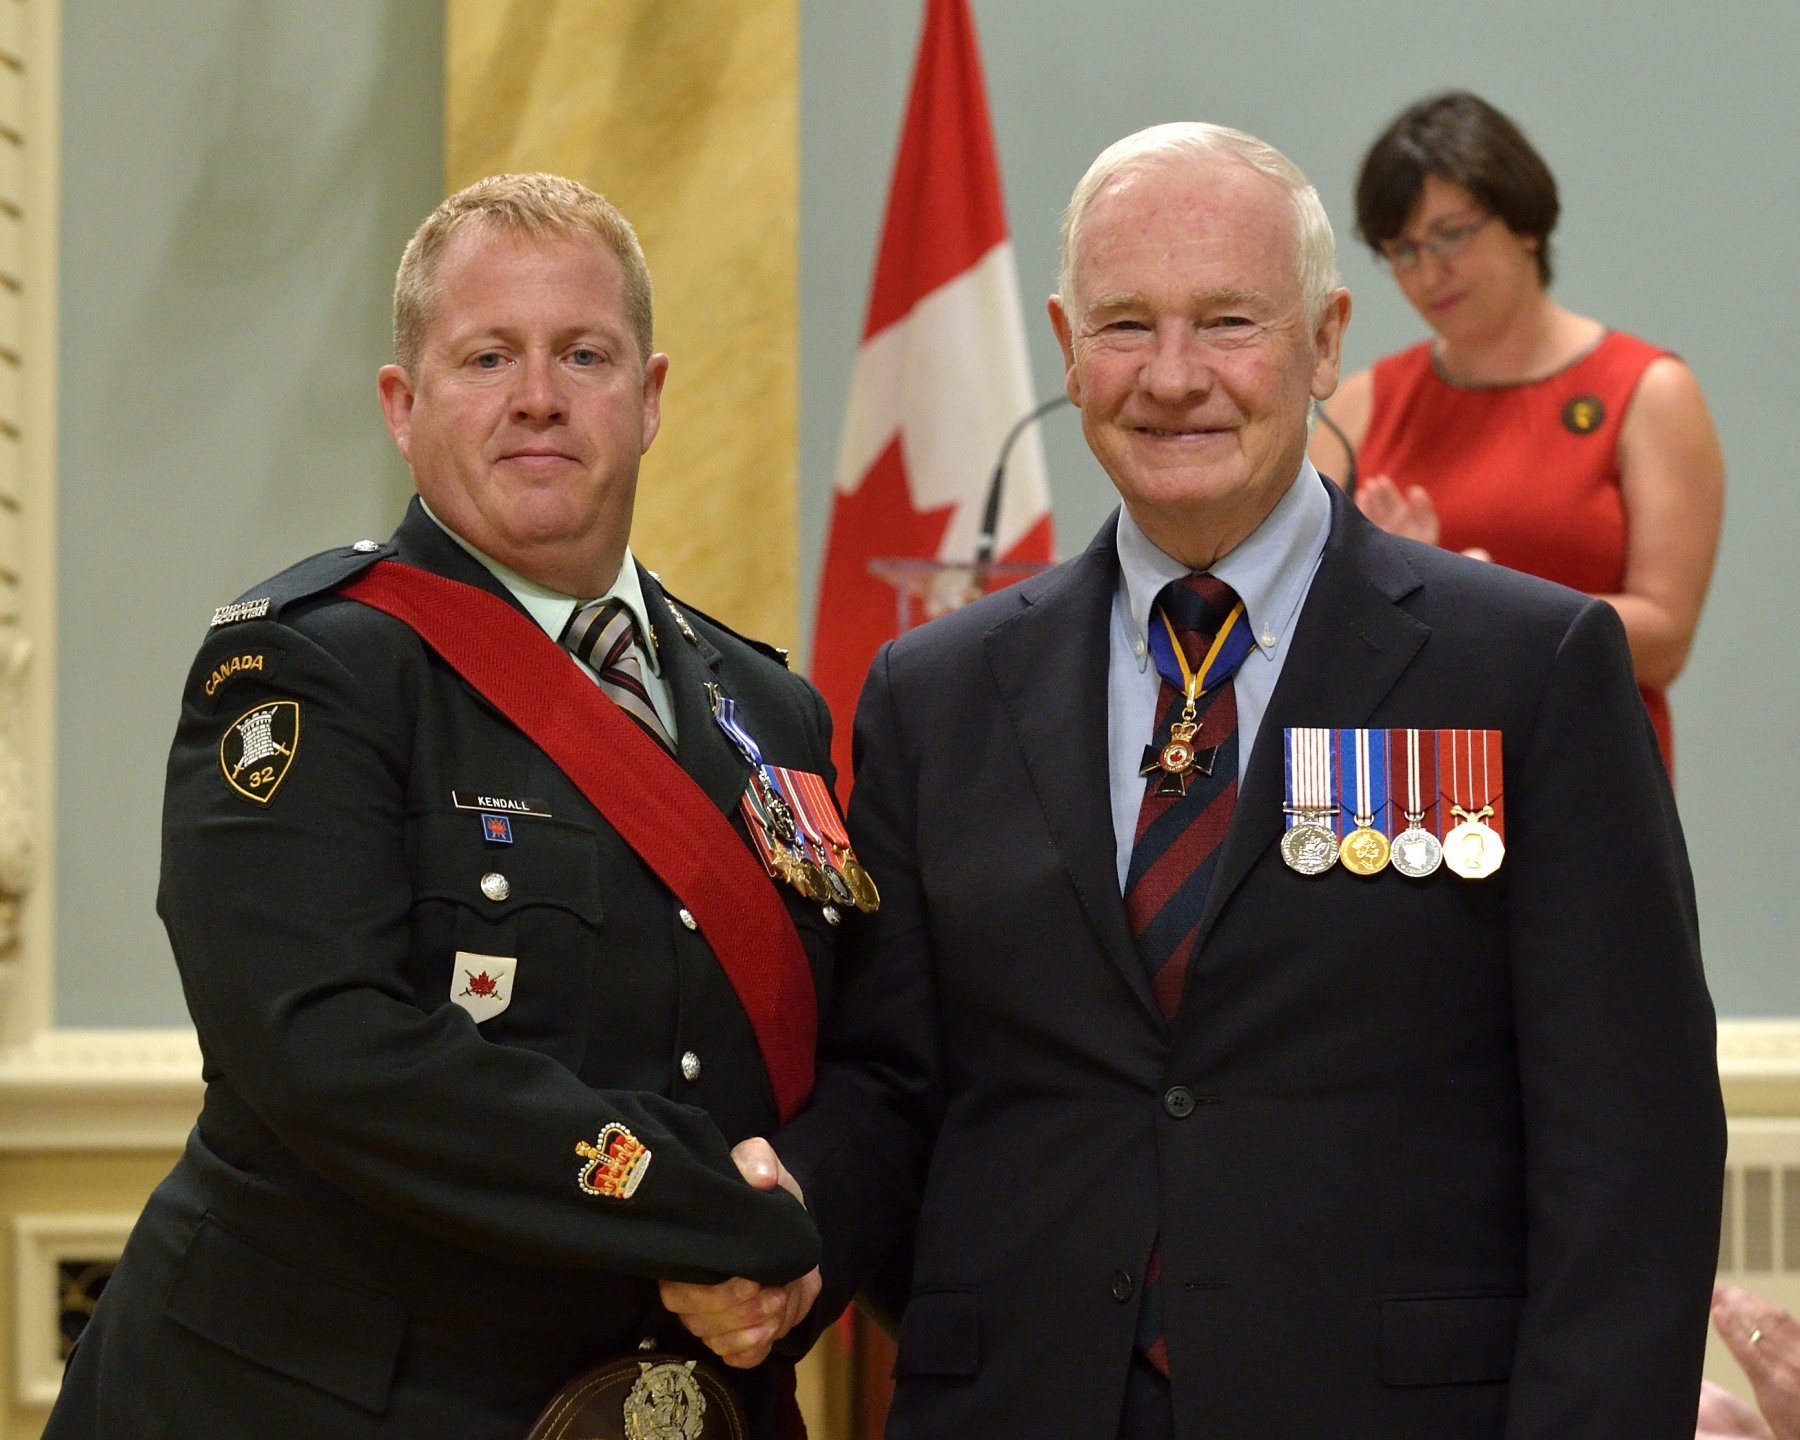 Warrant Officer Allan Mark Kendall, M.S.M., C.D. (Collingwood, Ontario) received the Meritorious Service Medal (Military Division). On January 10, 2011, Warrant Officer Kendall rescued a suicidal woman who had wandered out onto thin ice on the Severn River, in Sandy Lake, Ontario. Without regard for his own safety, he went out onto the ice to secure the woman, which allowed his Ranger team to haul them both safely back to shore. Warrant Officer Kendall's quick thinking brought great credit to the Canadian Rangers and to the Canadian Armed Forces.